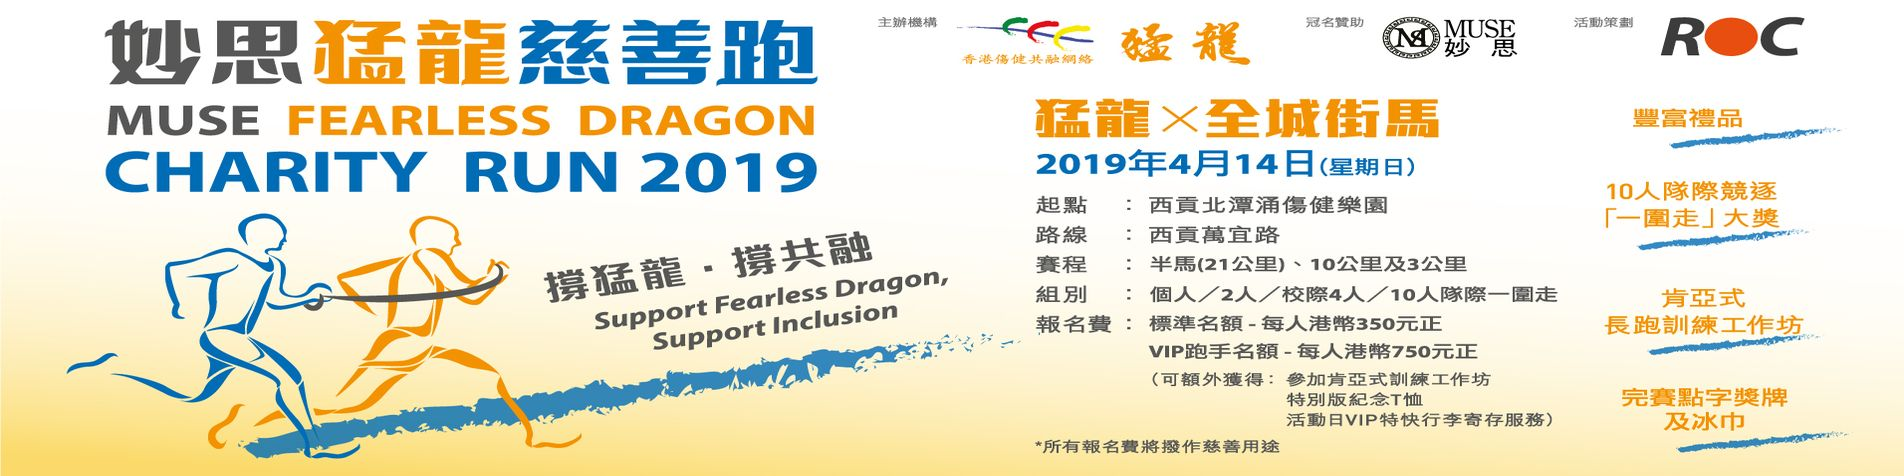 Muse Fearless Dragon Charity Run 2019